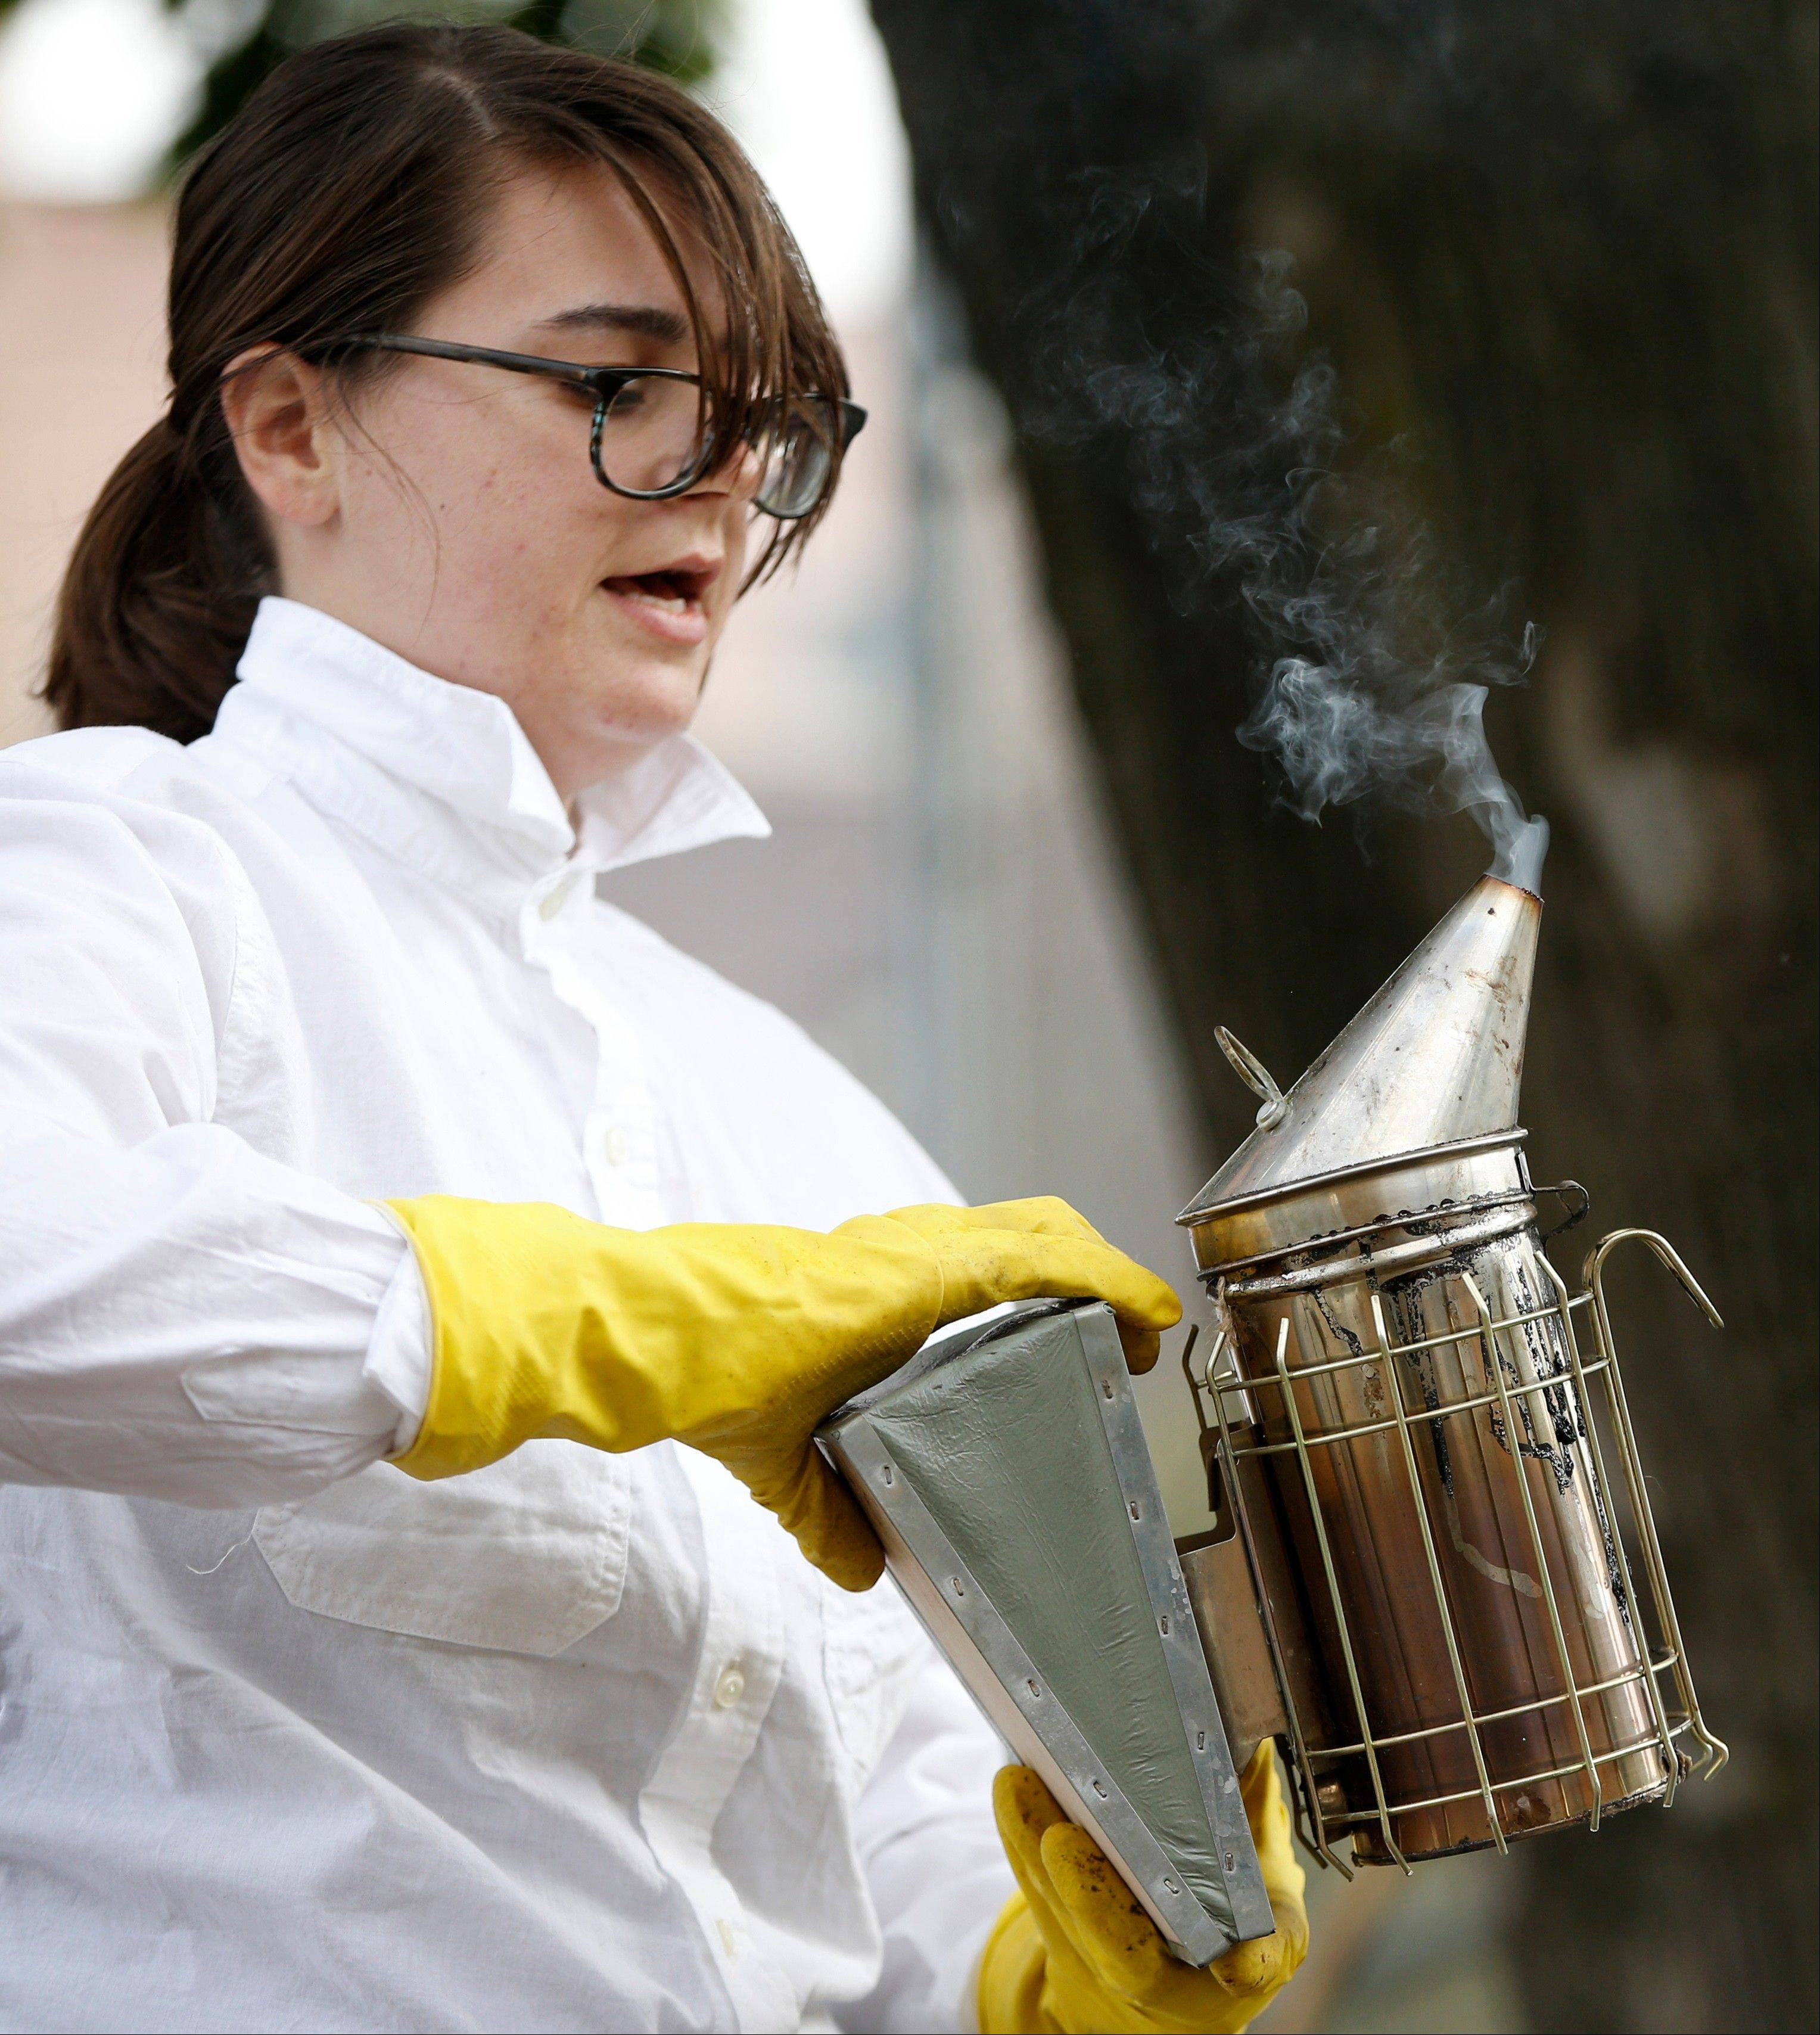 Beekeeper Kellen Henry checks her smoker before conducting a hive inspection at a Feedback Farms hive in Brooklyn, N.Y. Though New York reversed a long-standing ban on tending to honeybees in 2010, there are issues beyond legality that potential beekeepers should consider. Beekeeping, especially in an urban area, requires space, time and cooperation with the surrounding community.